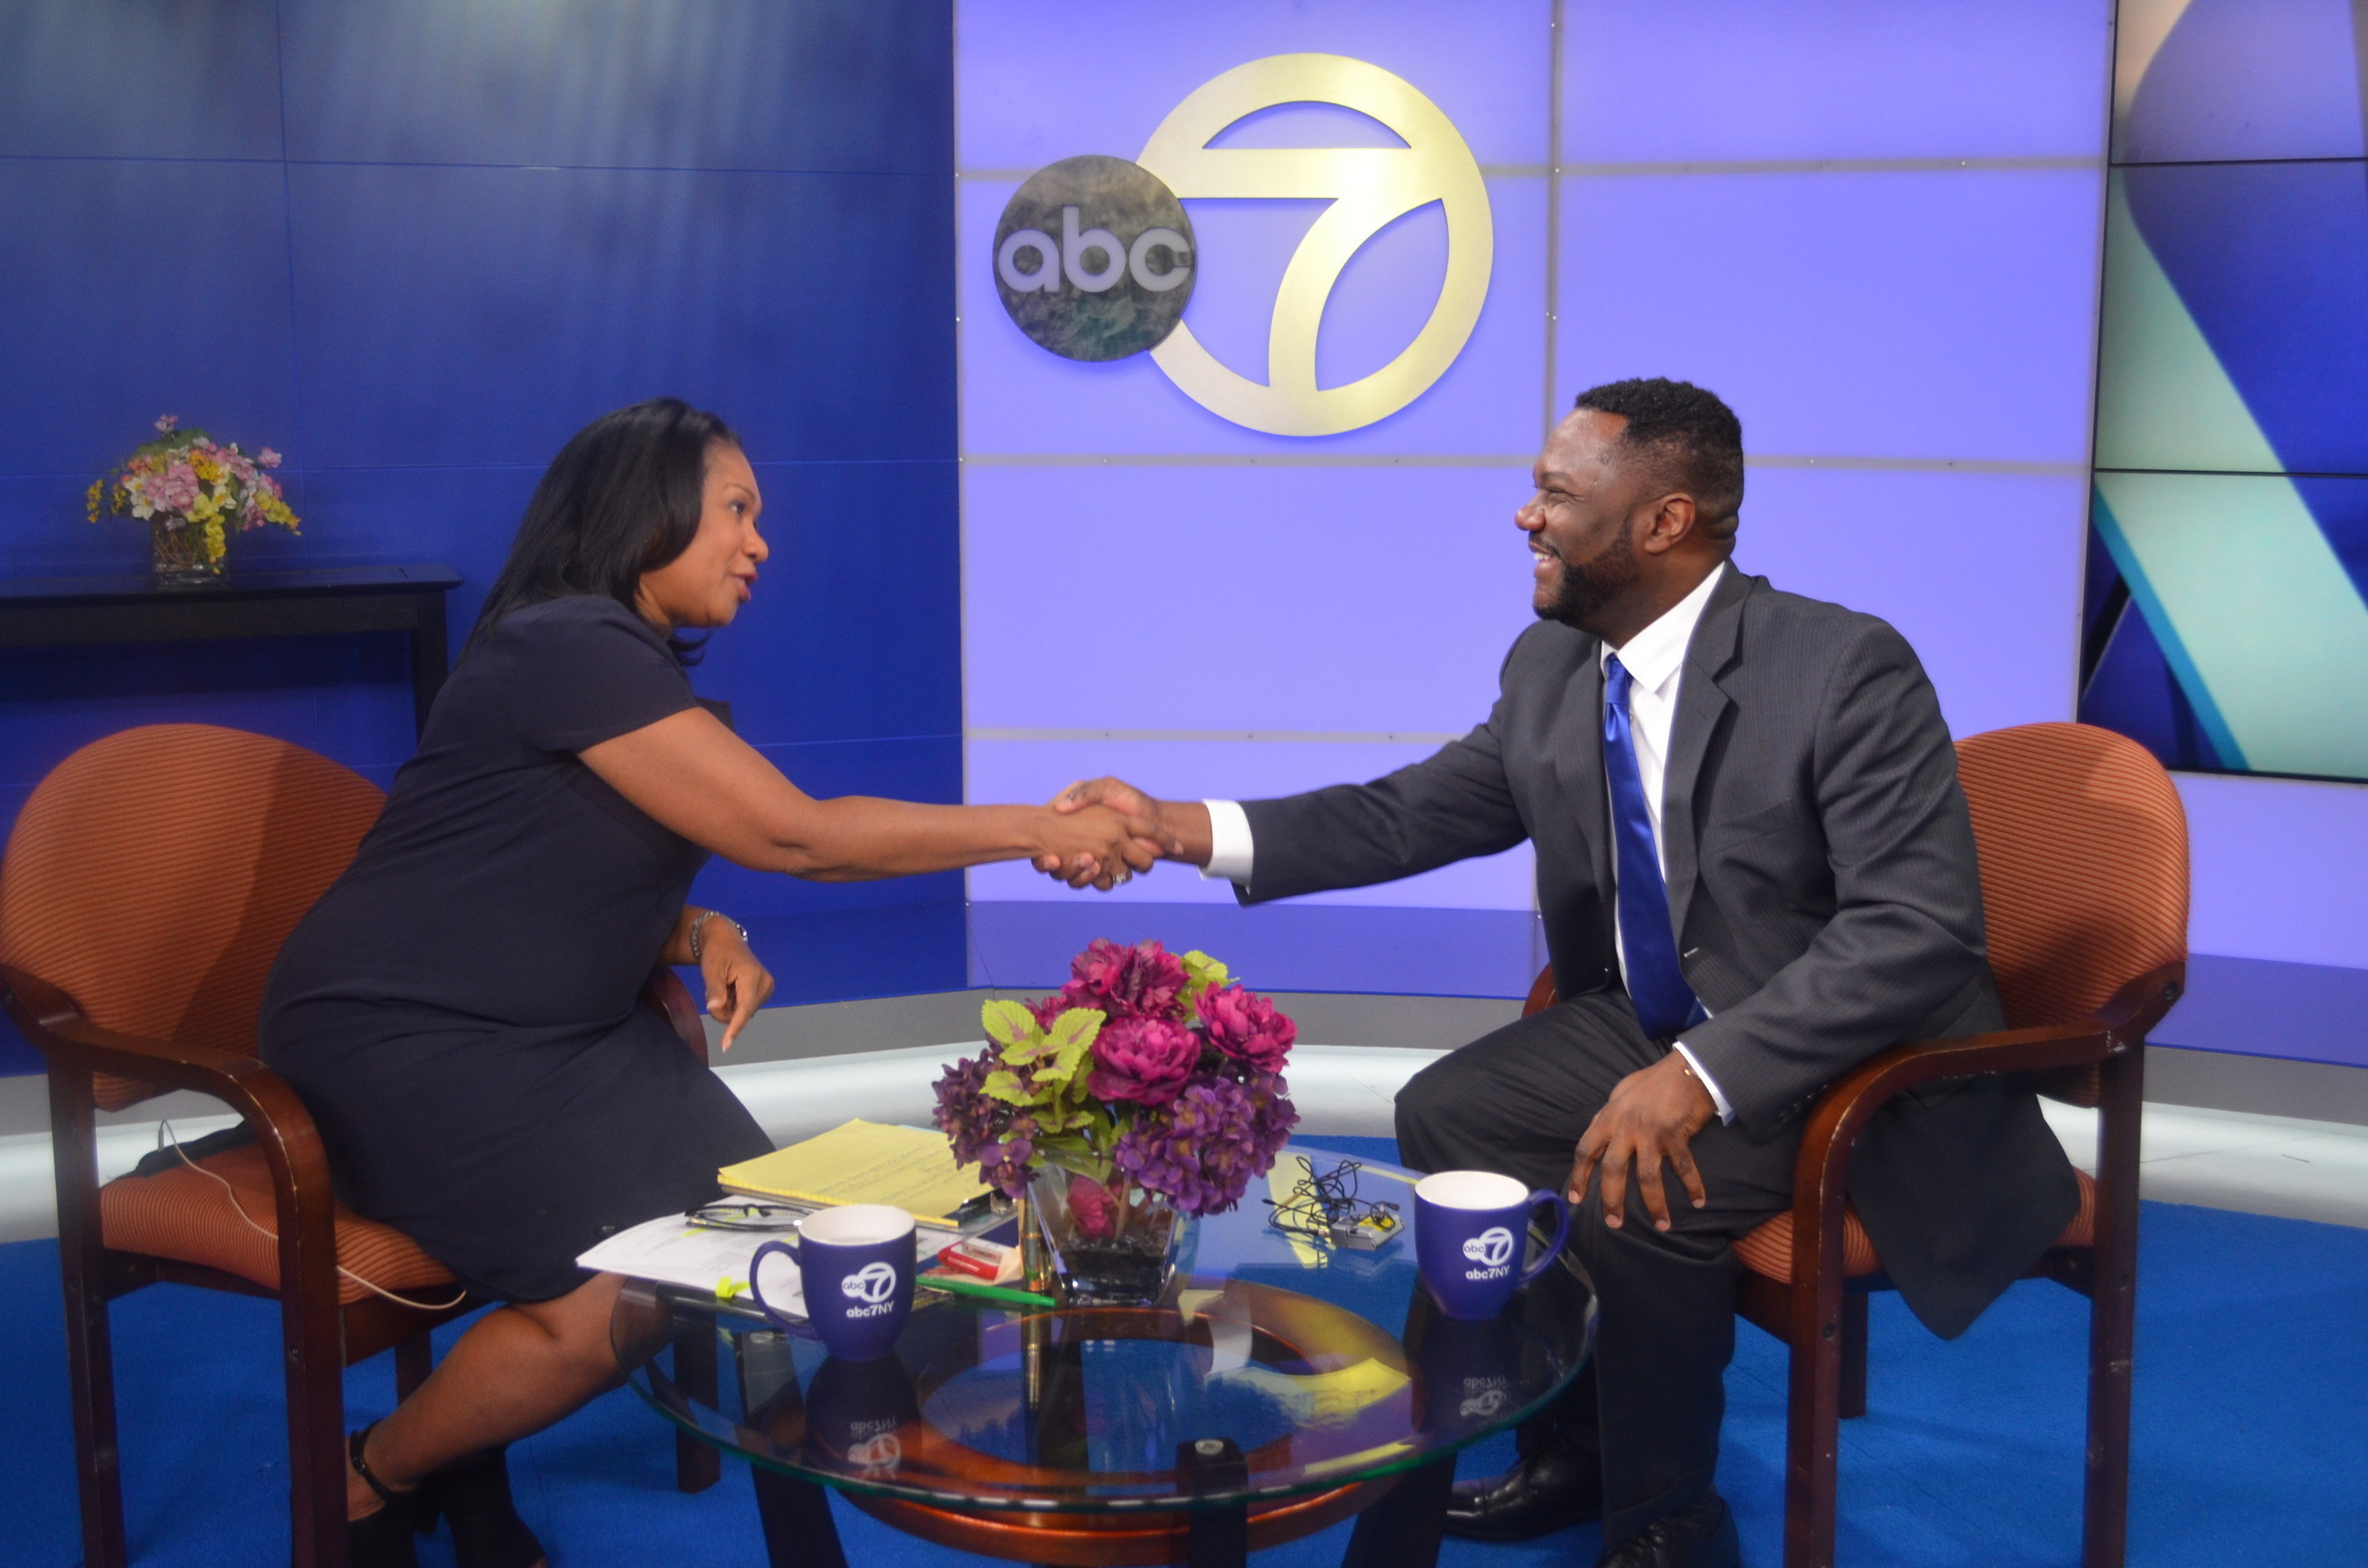 Sandra Bookman, Host of Here and Now, and Michael T. Pugh, President & CEO, Carver Federal Savings Bank